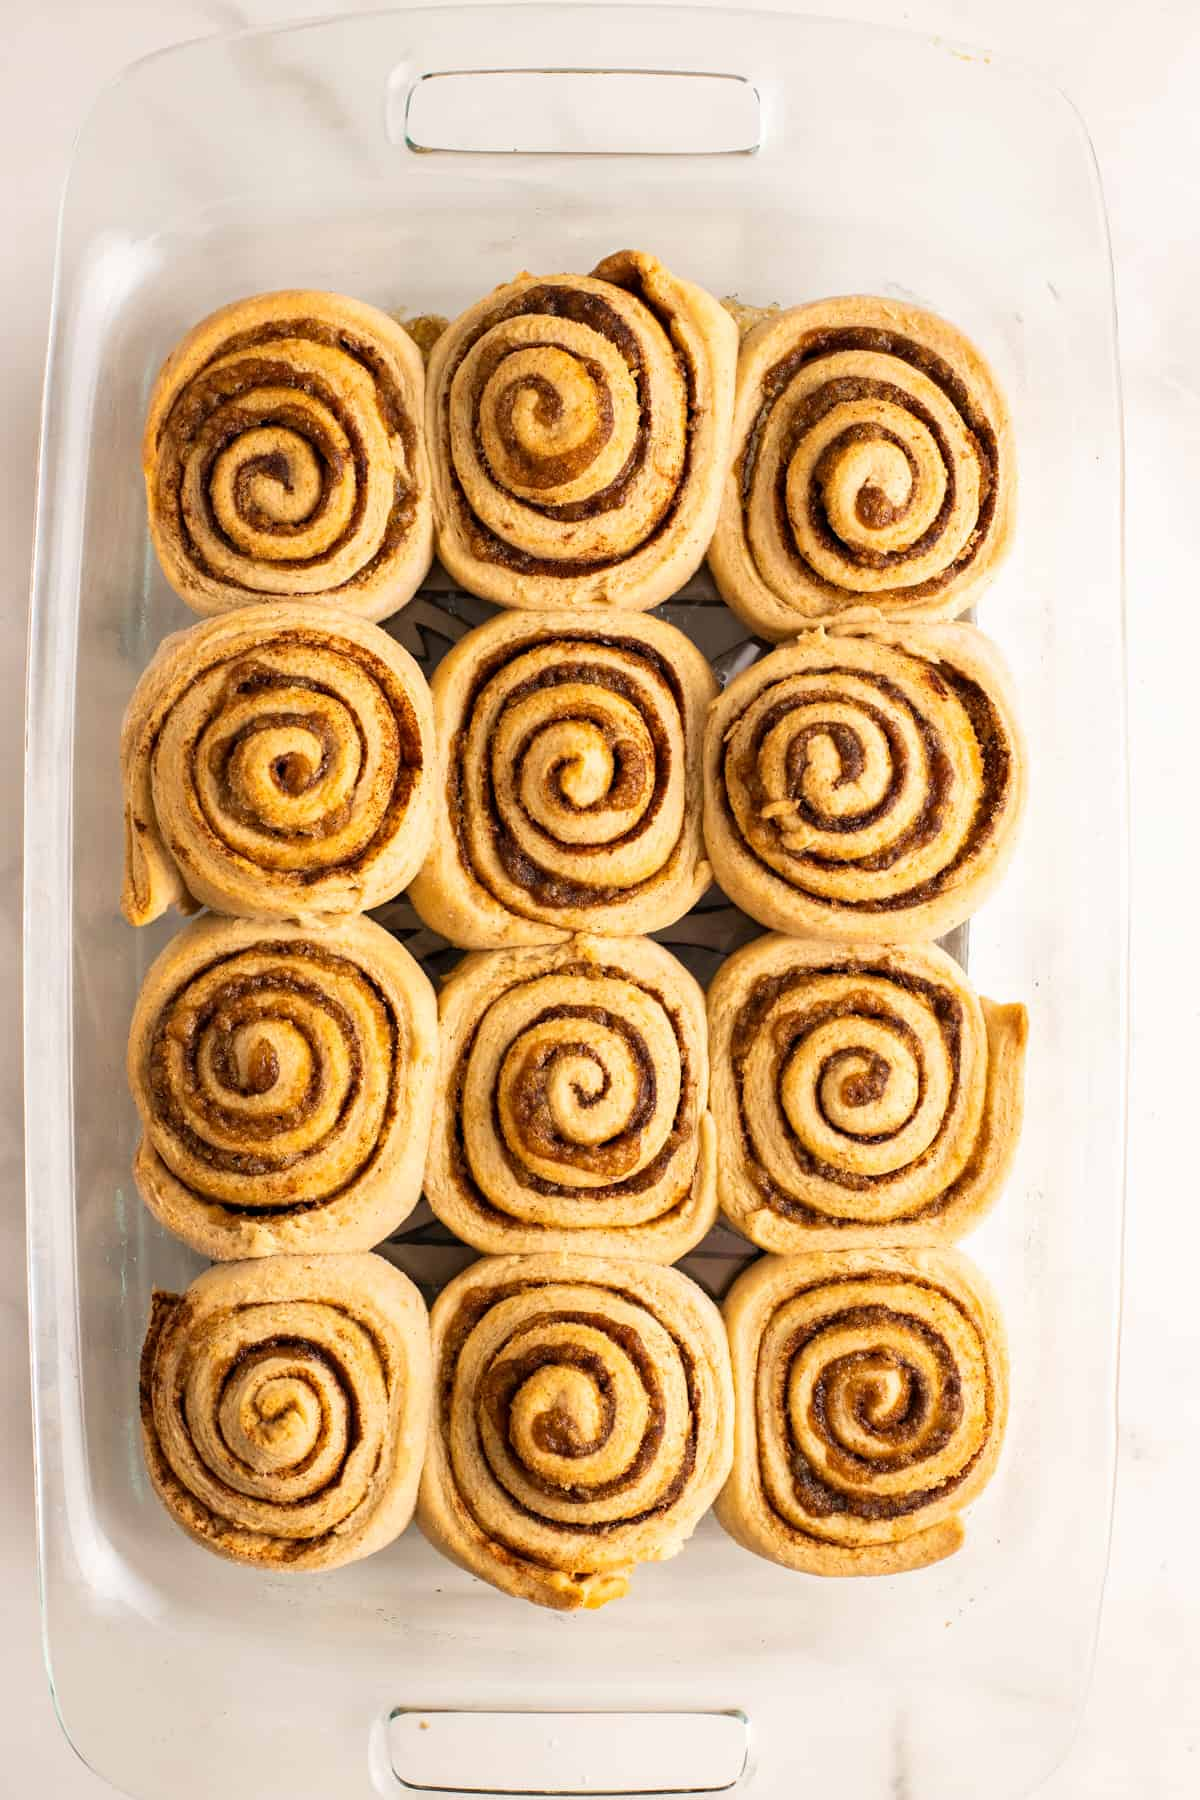 freshly baked cinnamon rolls in a glass dish on a marble countertop